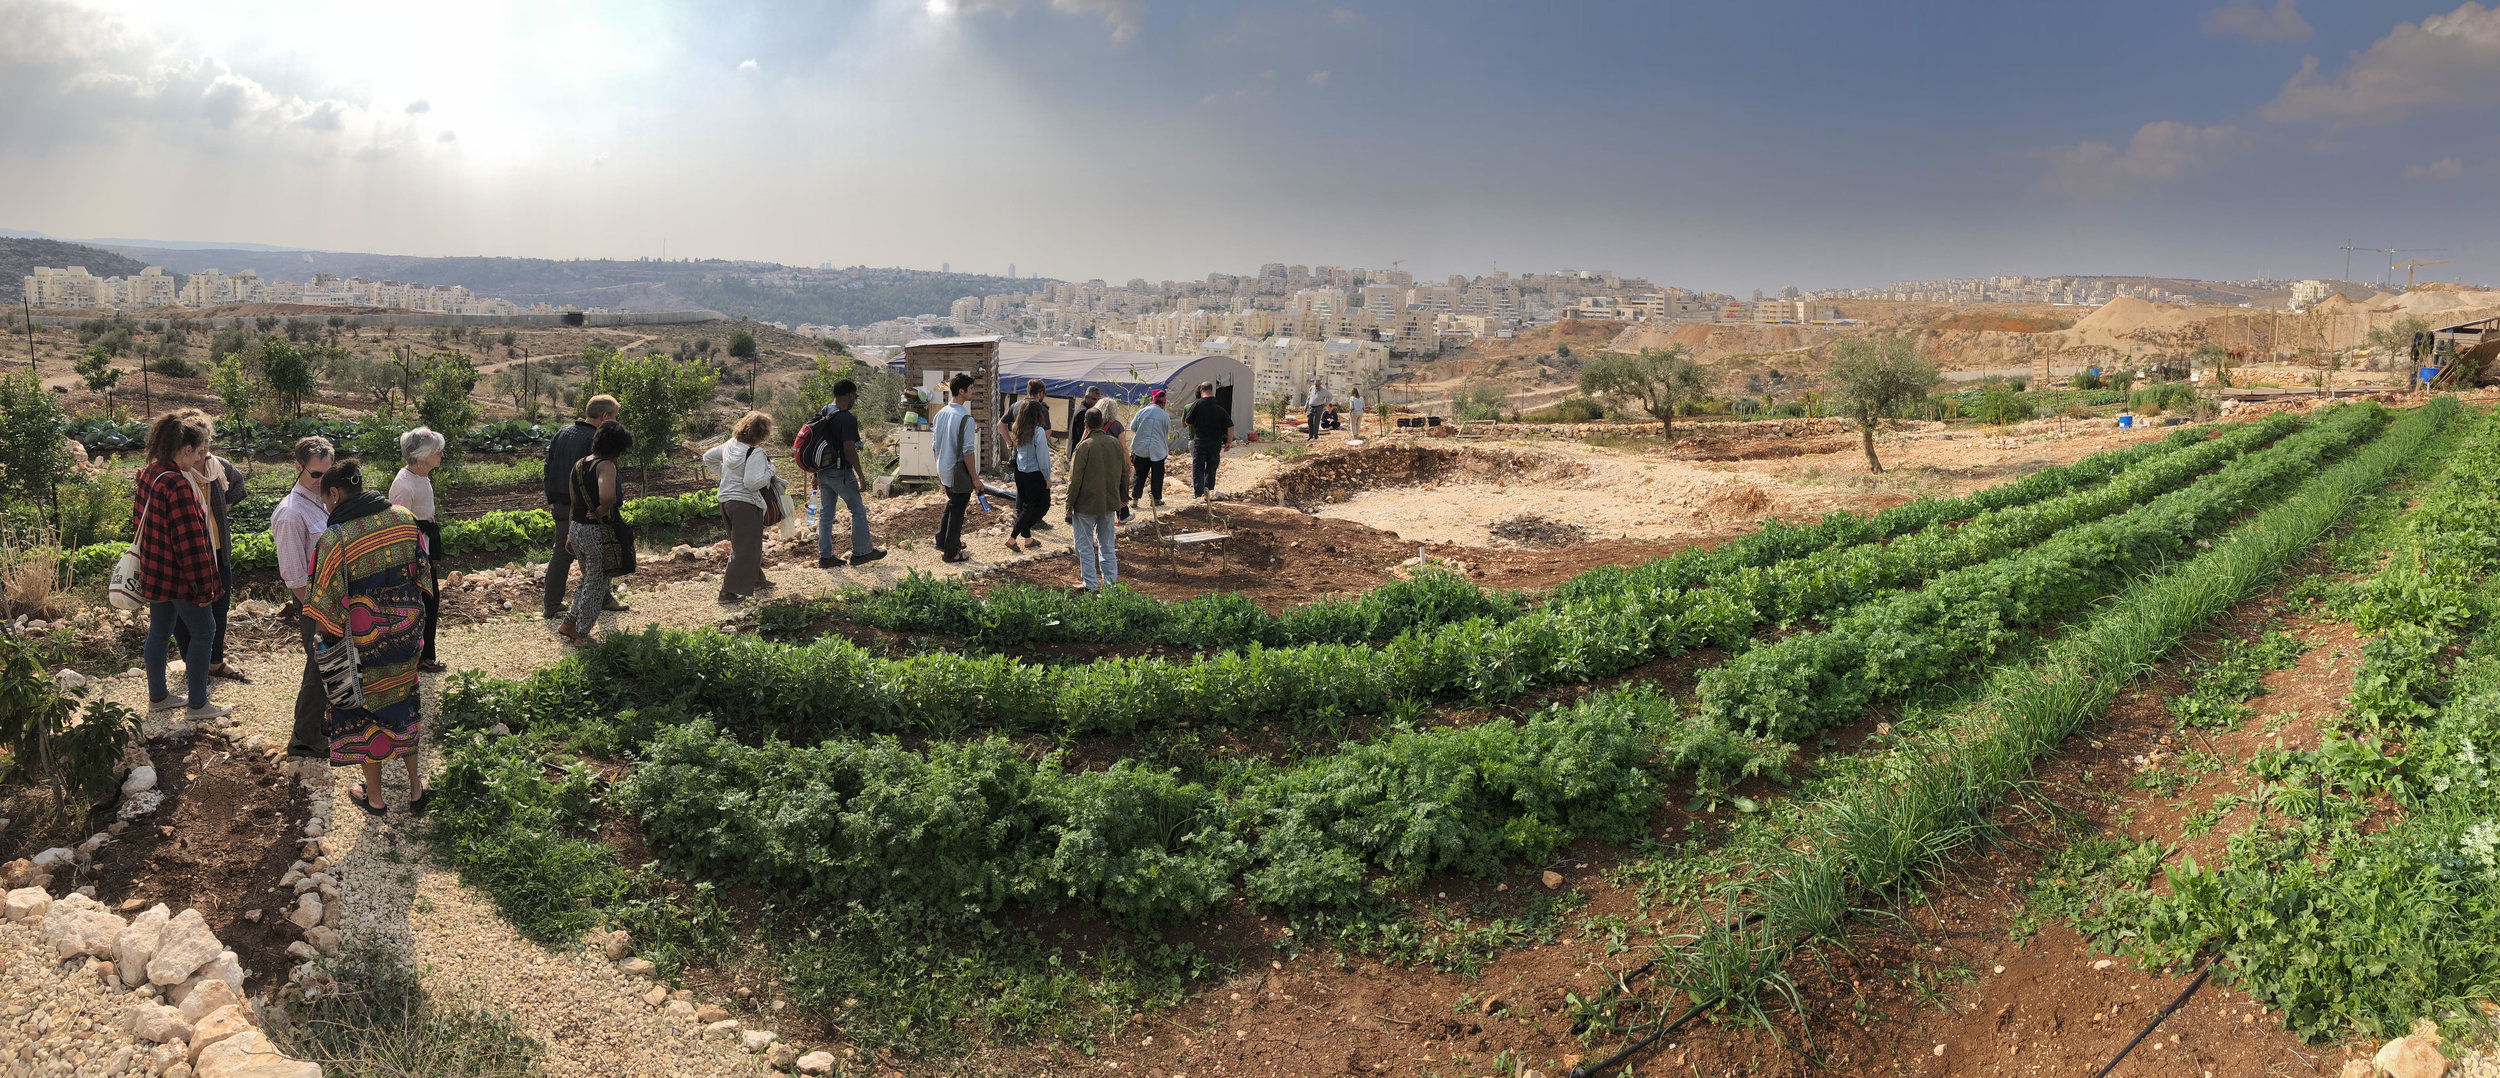 'Eyewitness Palestine delegation at the Om Sleiman farm which is surrounded by settlements. Credit Hubert Murray